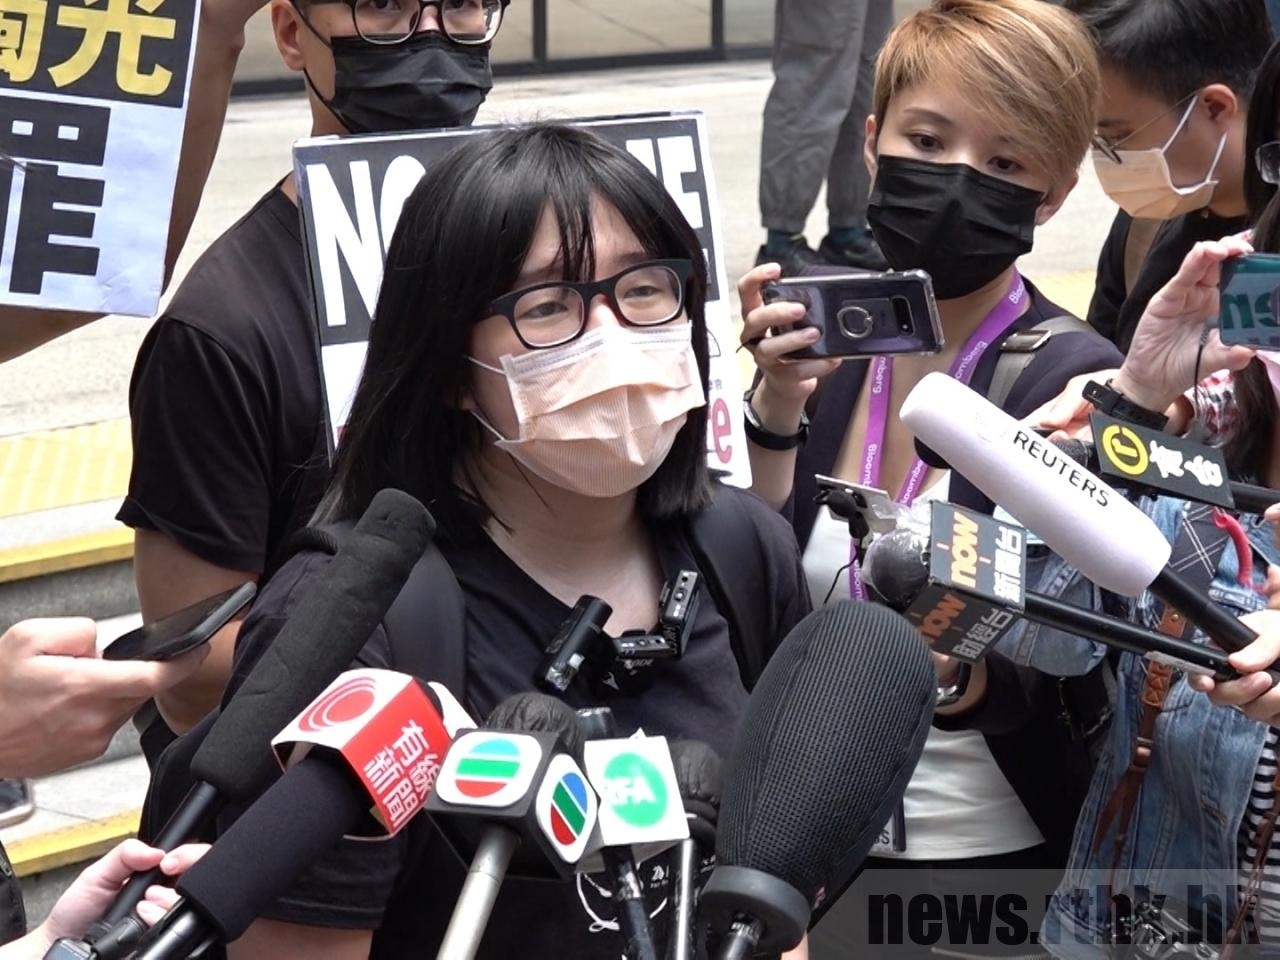 The vice-chairwoman of the Hong Kong Alliance Chow Hang-tung has said she would go to Victoria Park on June 4 in a personal capacity to mourn the victims of the 1989 crackdown. File photo: RTHK